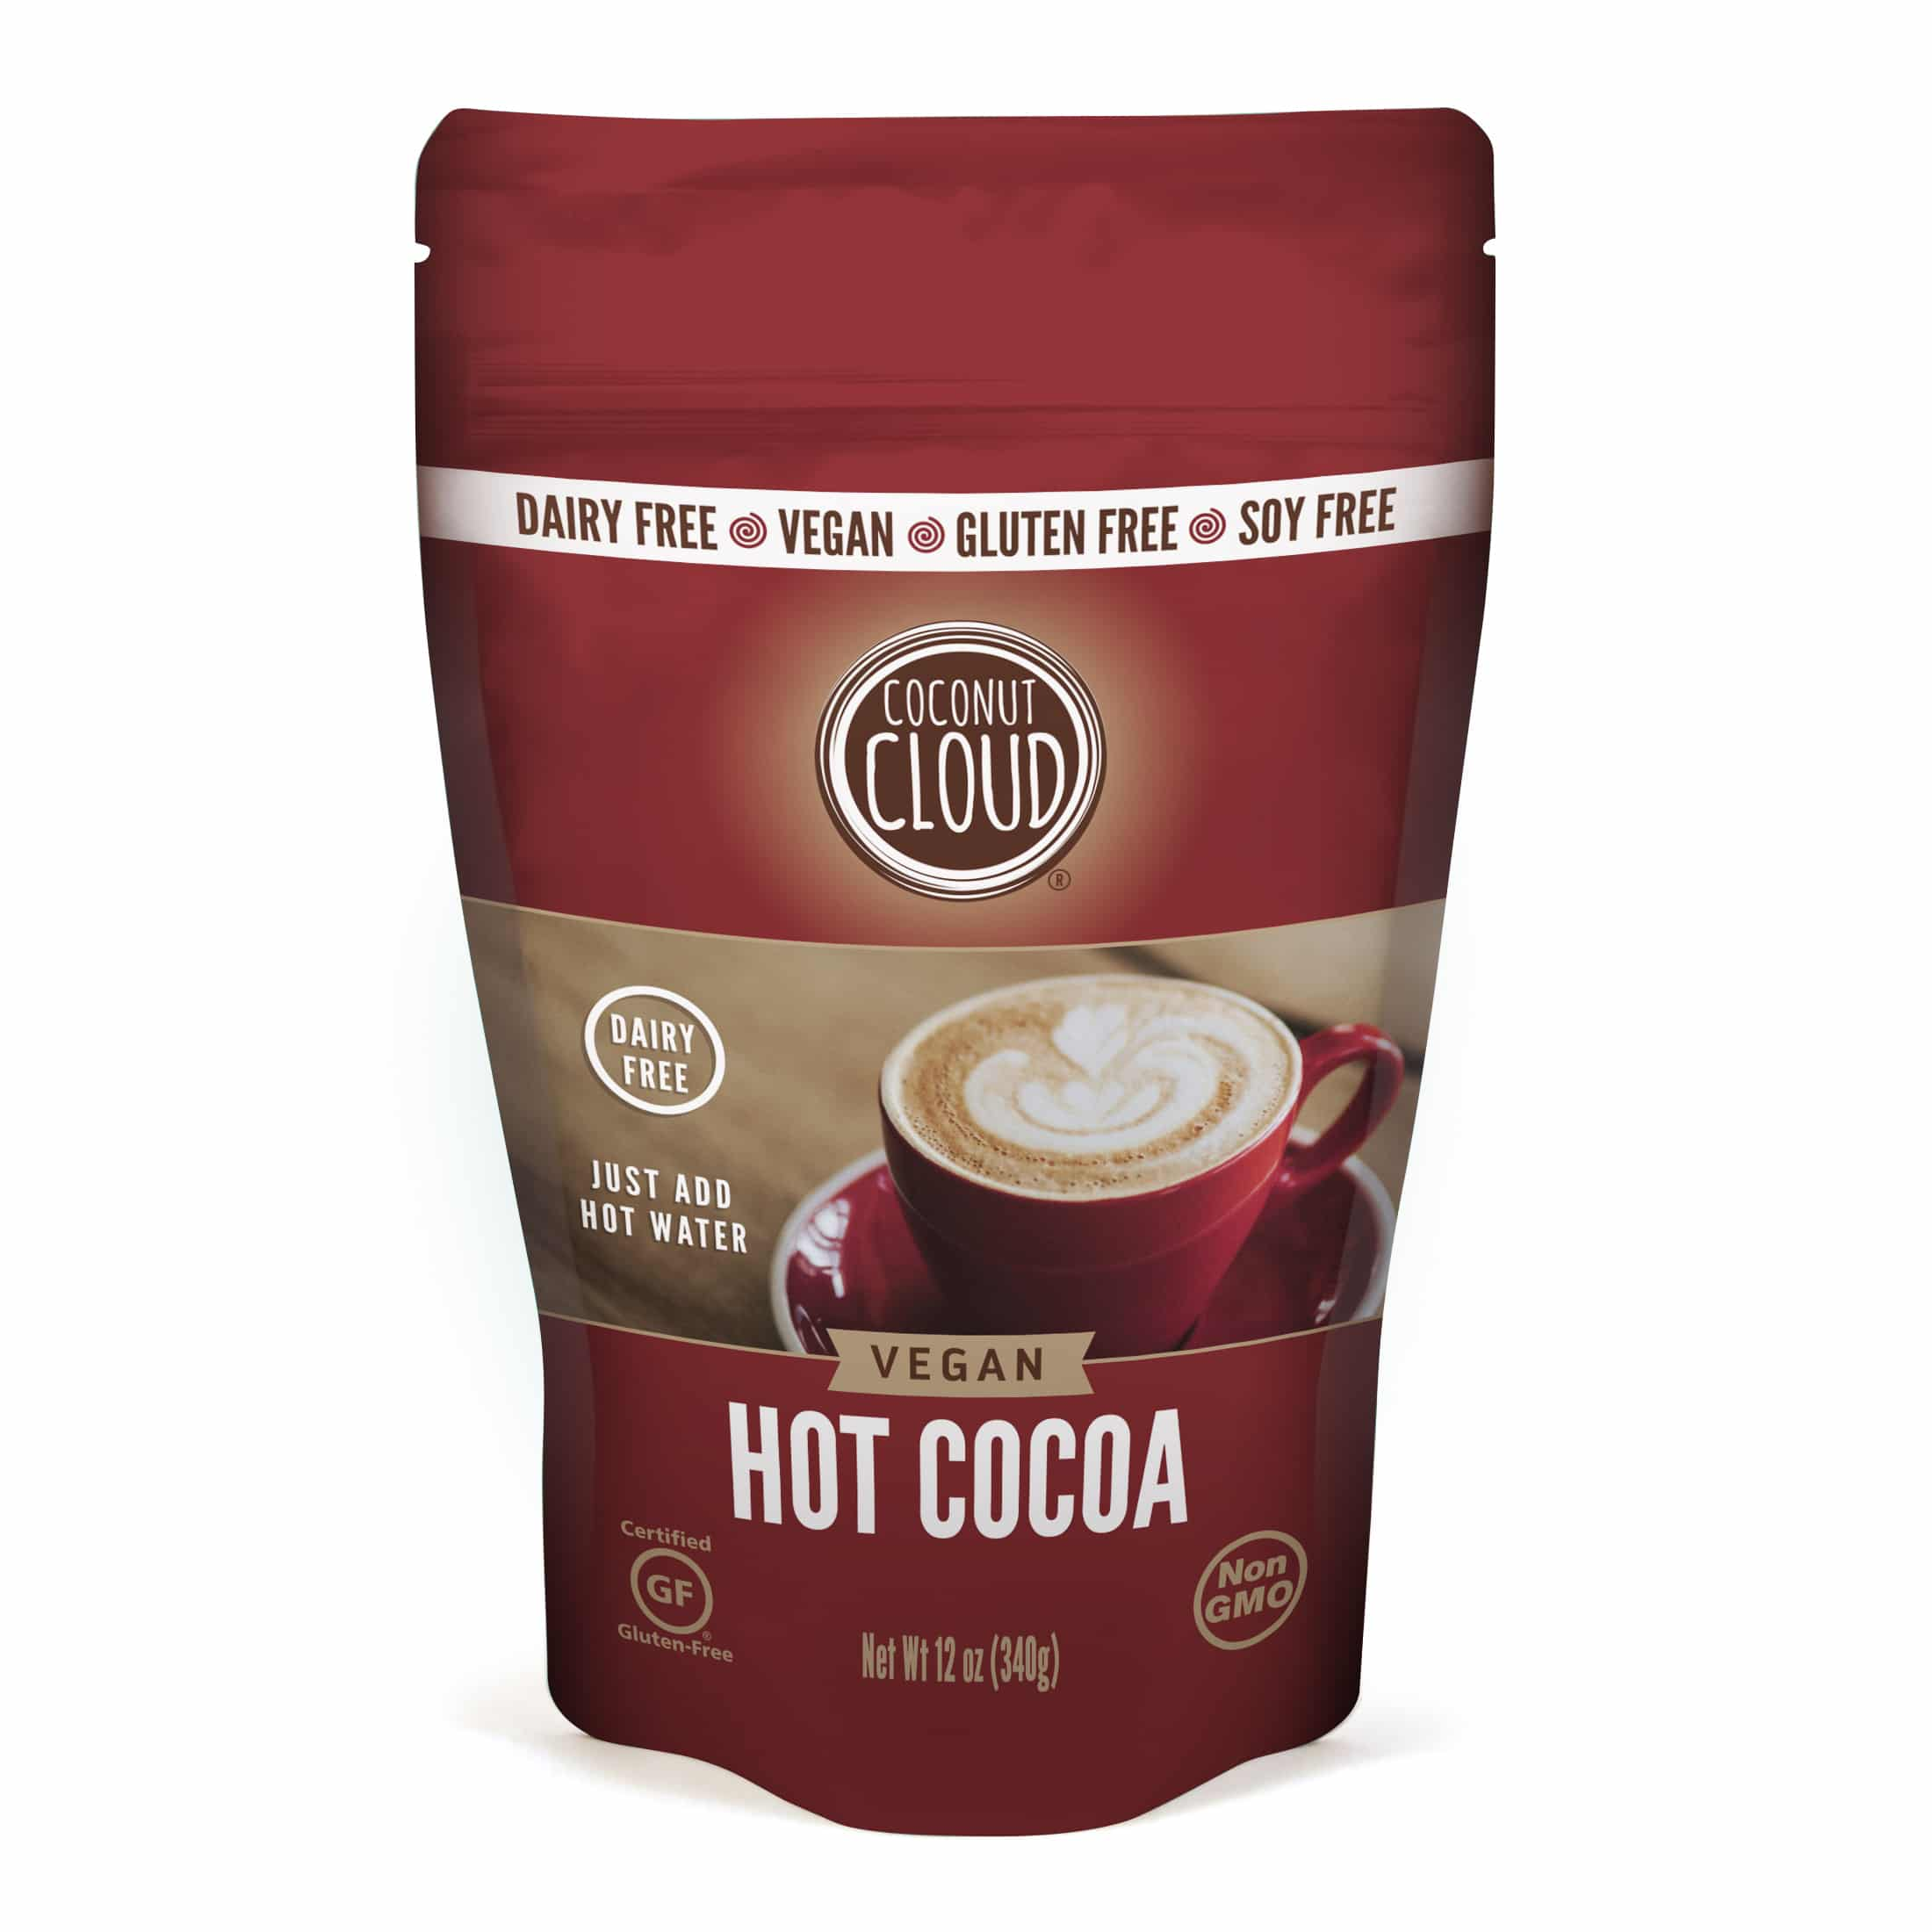 Coconut Cloud Launches Vegan Hot Cocoa